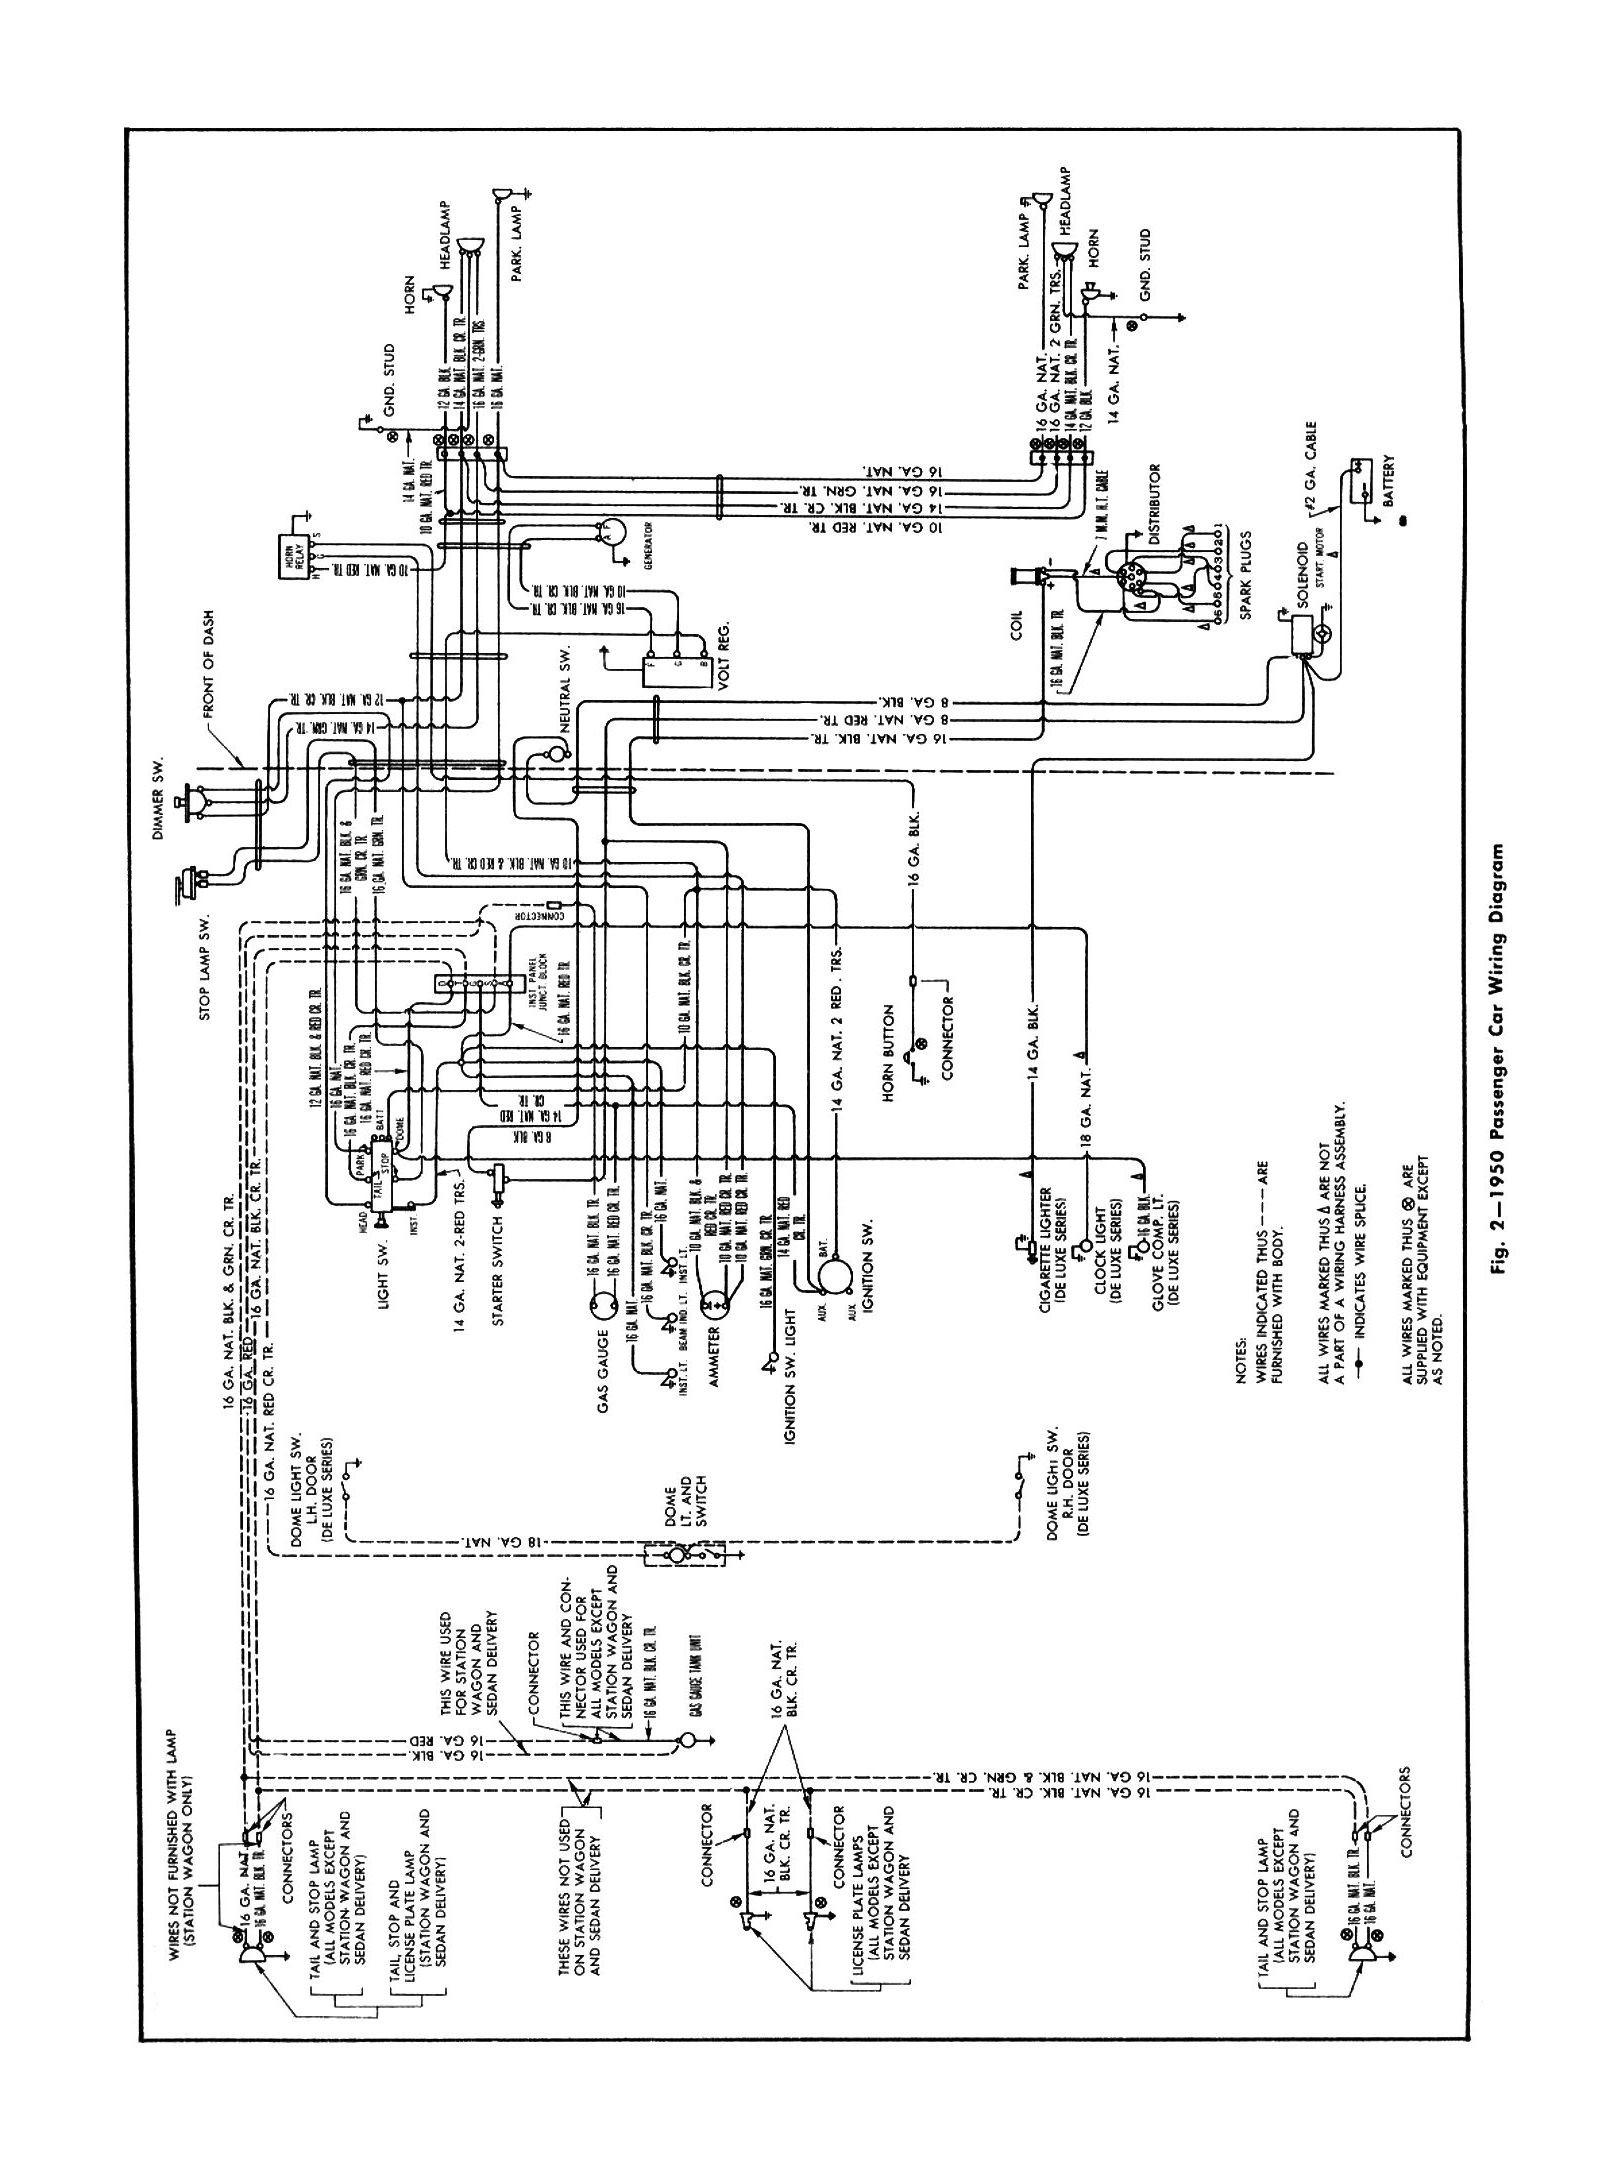 50car 1950 chevy truck wiring harness on 1950 download wirning diagrams Ford Schematics at gsmx.co